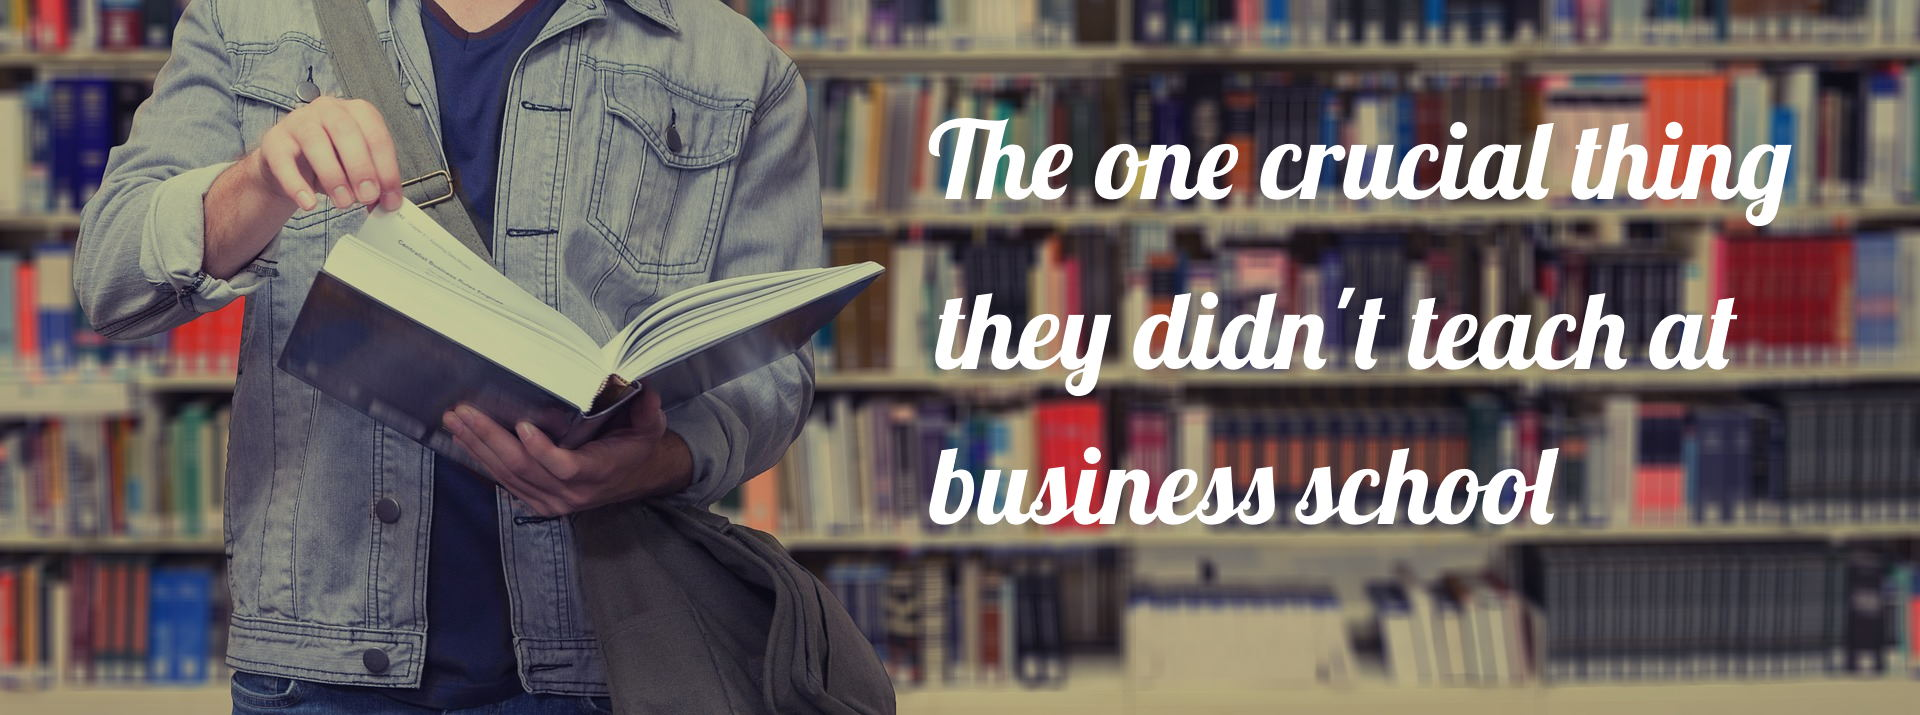 The one crucial thing they didn't teach at business school